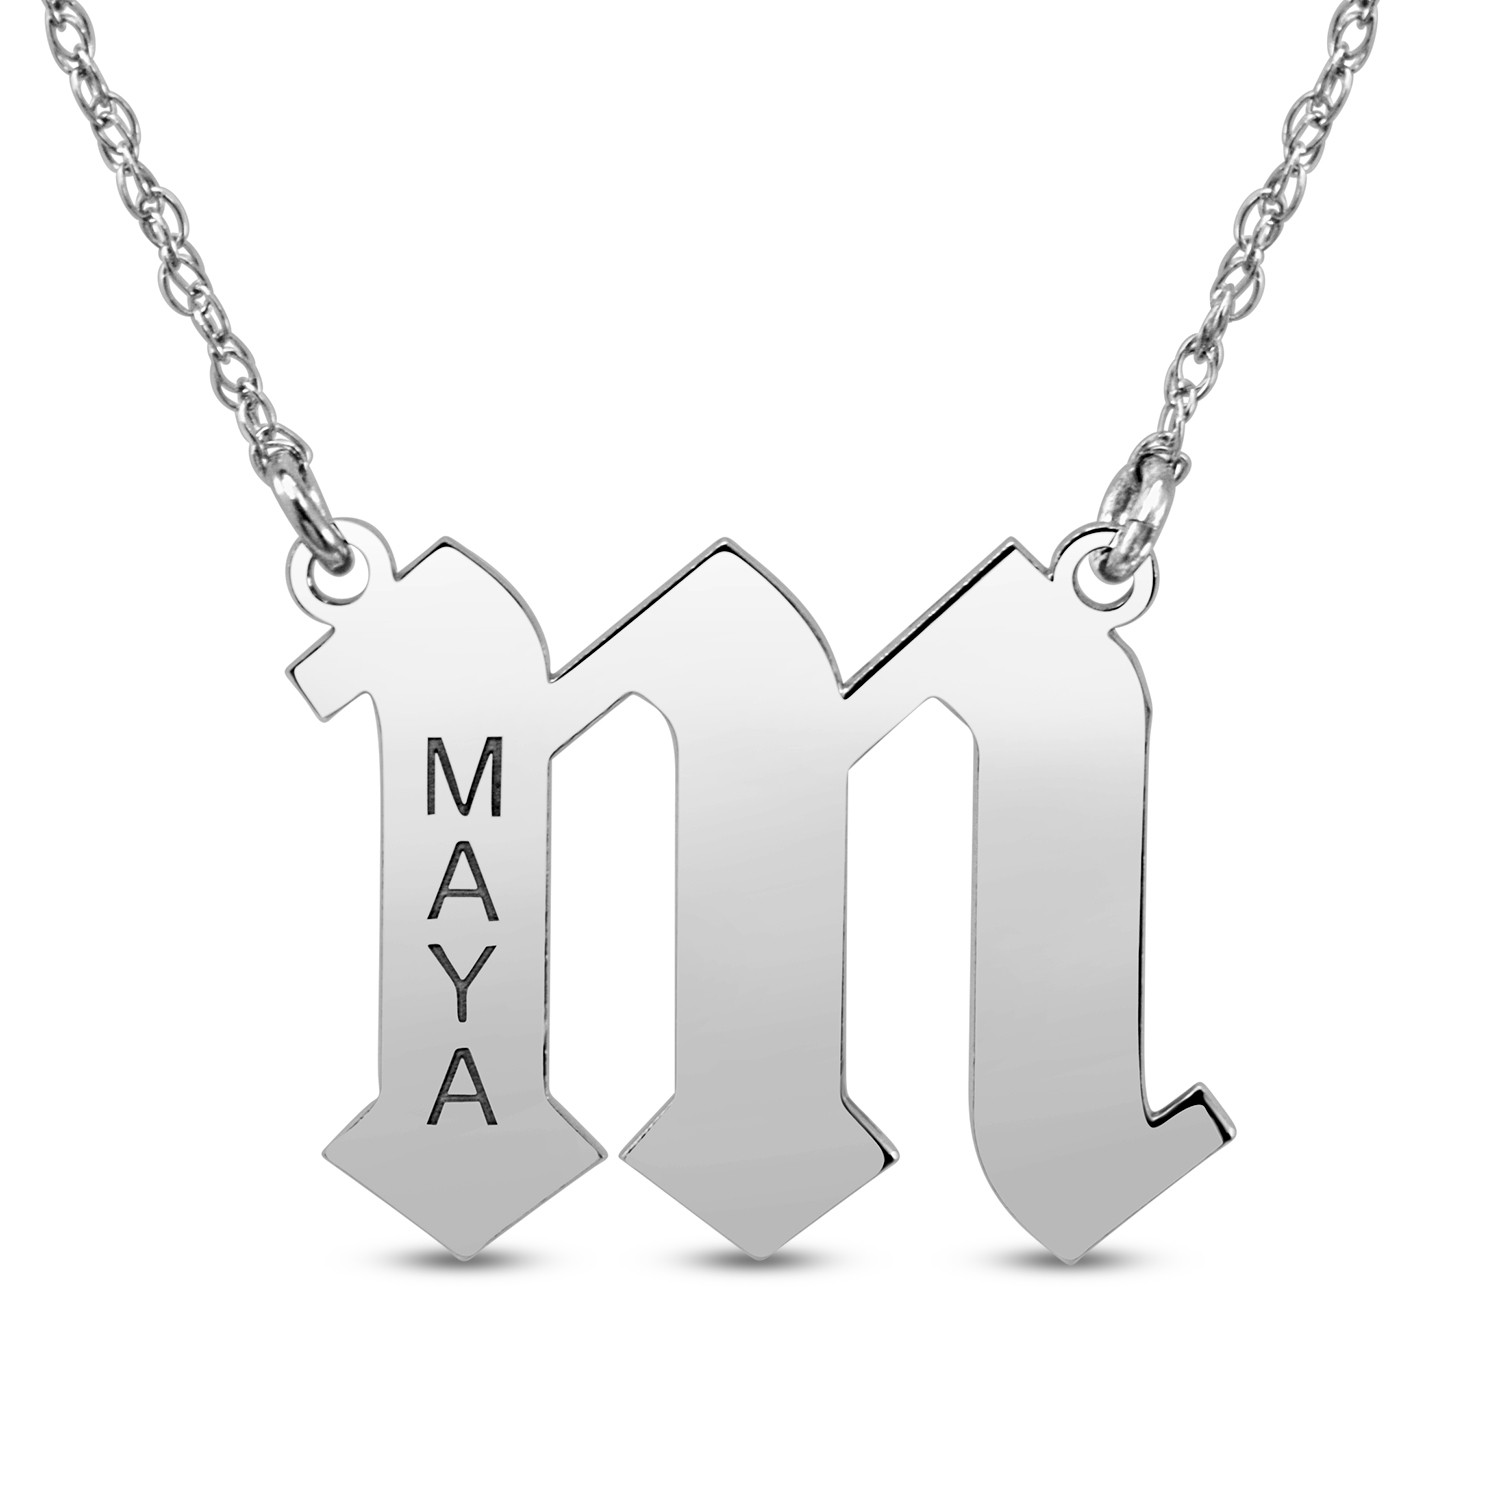 HI Polish Name Pers Necklace - 1 initial, 1 all UPPERCASE 9 letter max engraving (Example: m, MAYA 17.48mm x 22.77mm)